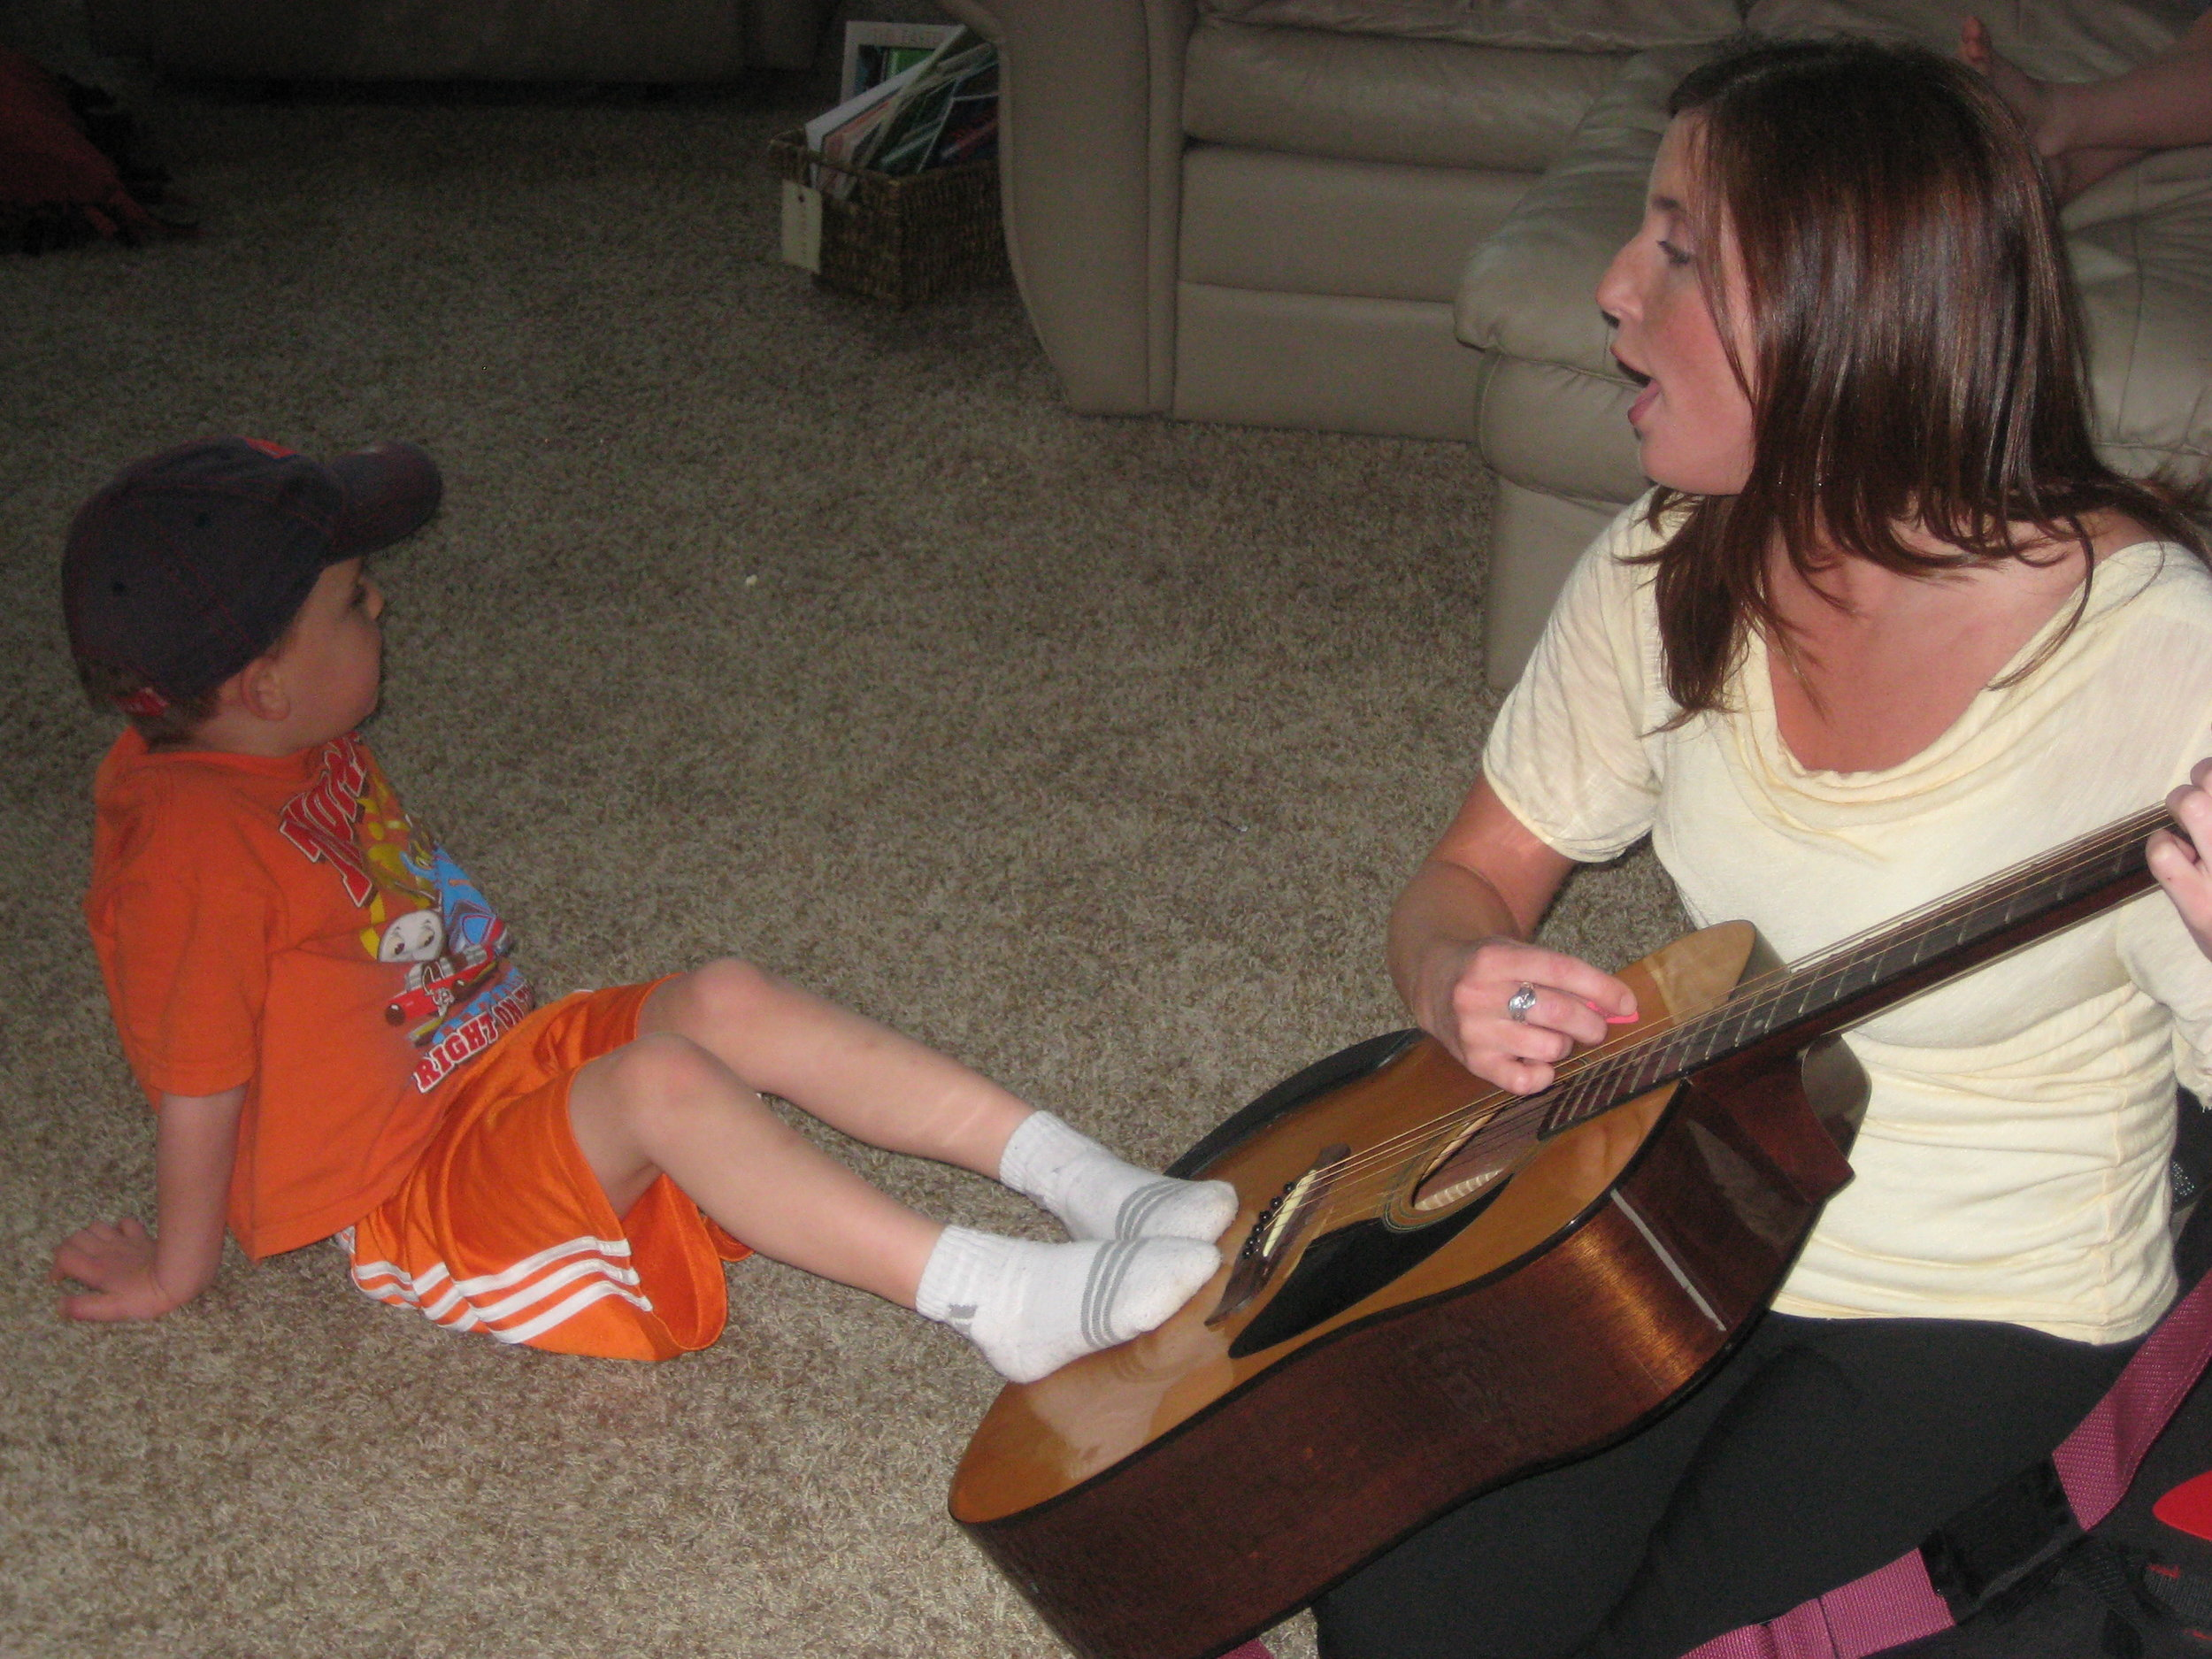 Extrasensory Stimulation - Sensory Stimulation: Feet on the guitar allows the child to hear and feel the music.